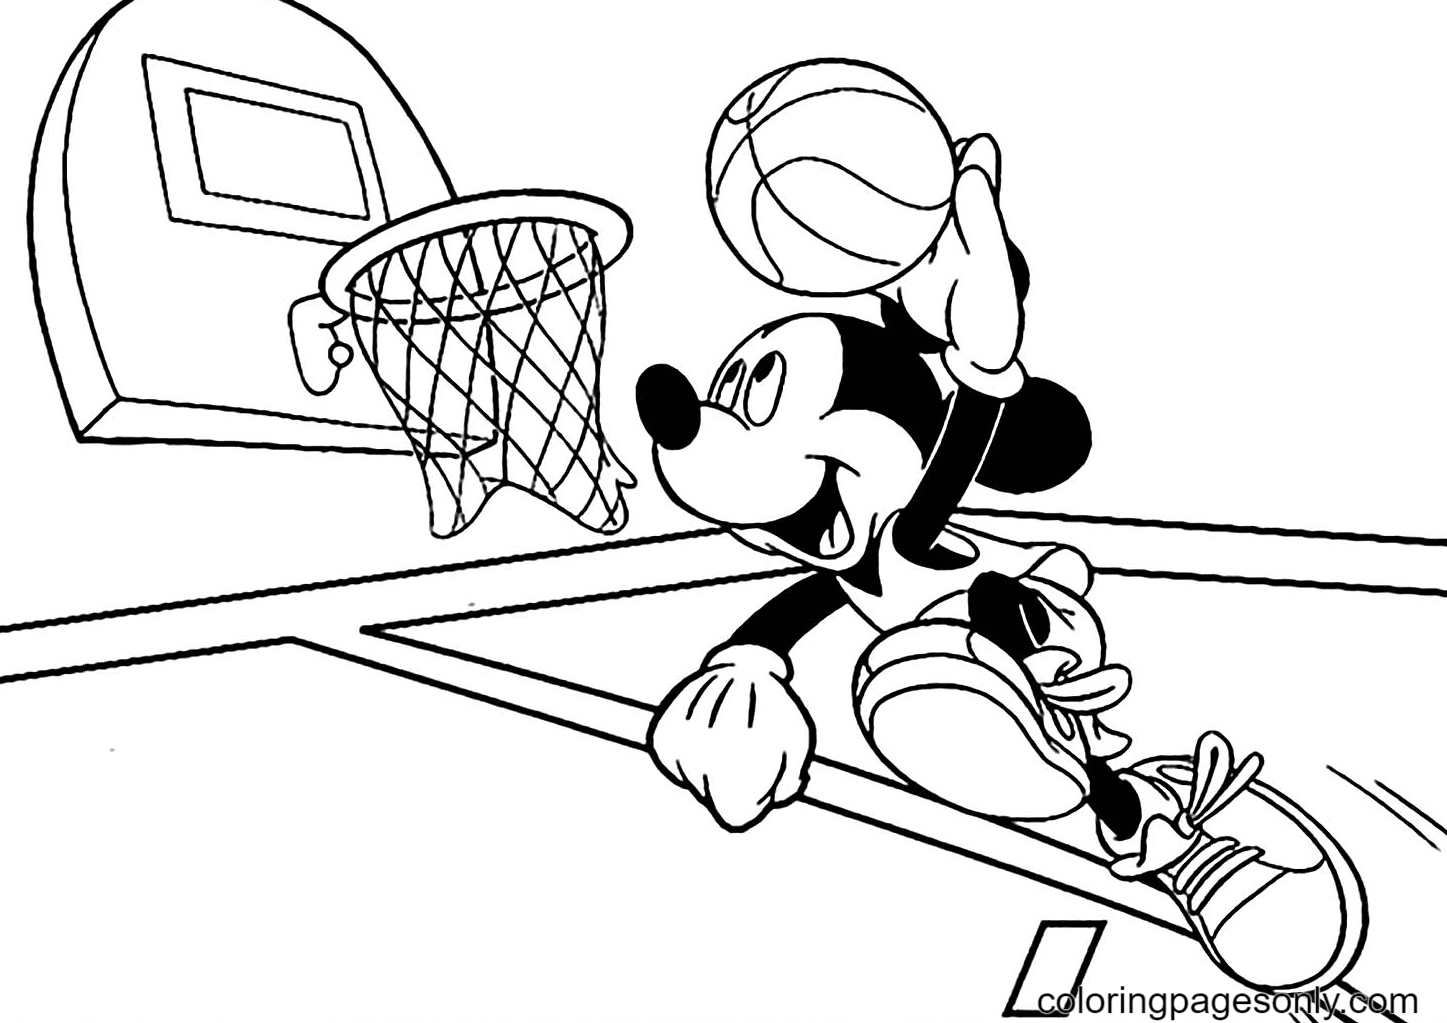 Mickey Throws The Ball Into The Net Coloring Page